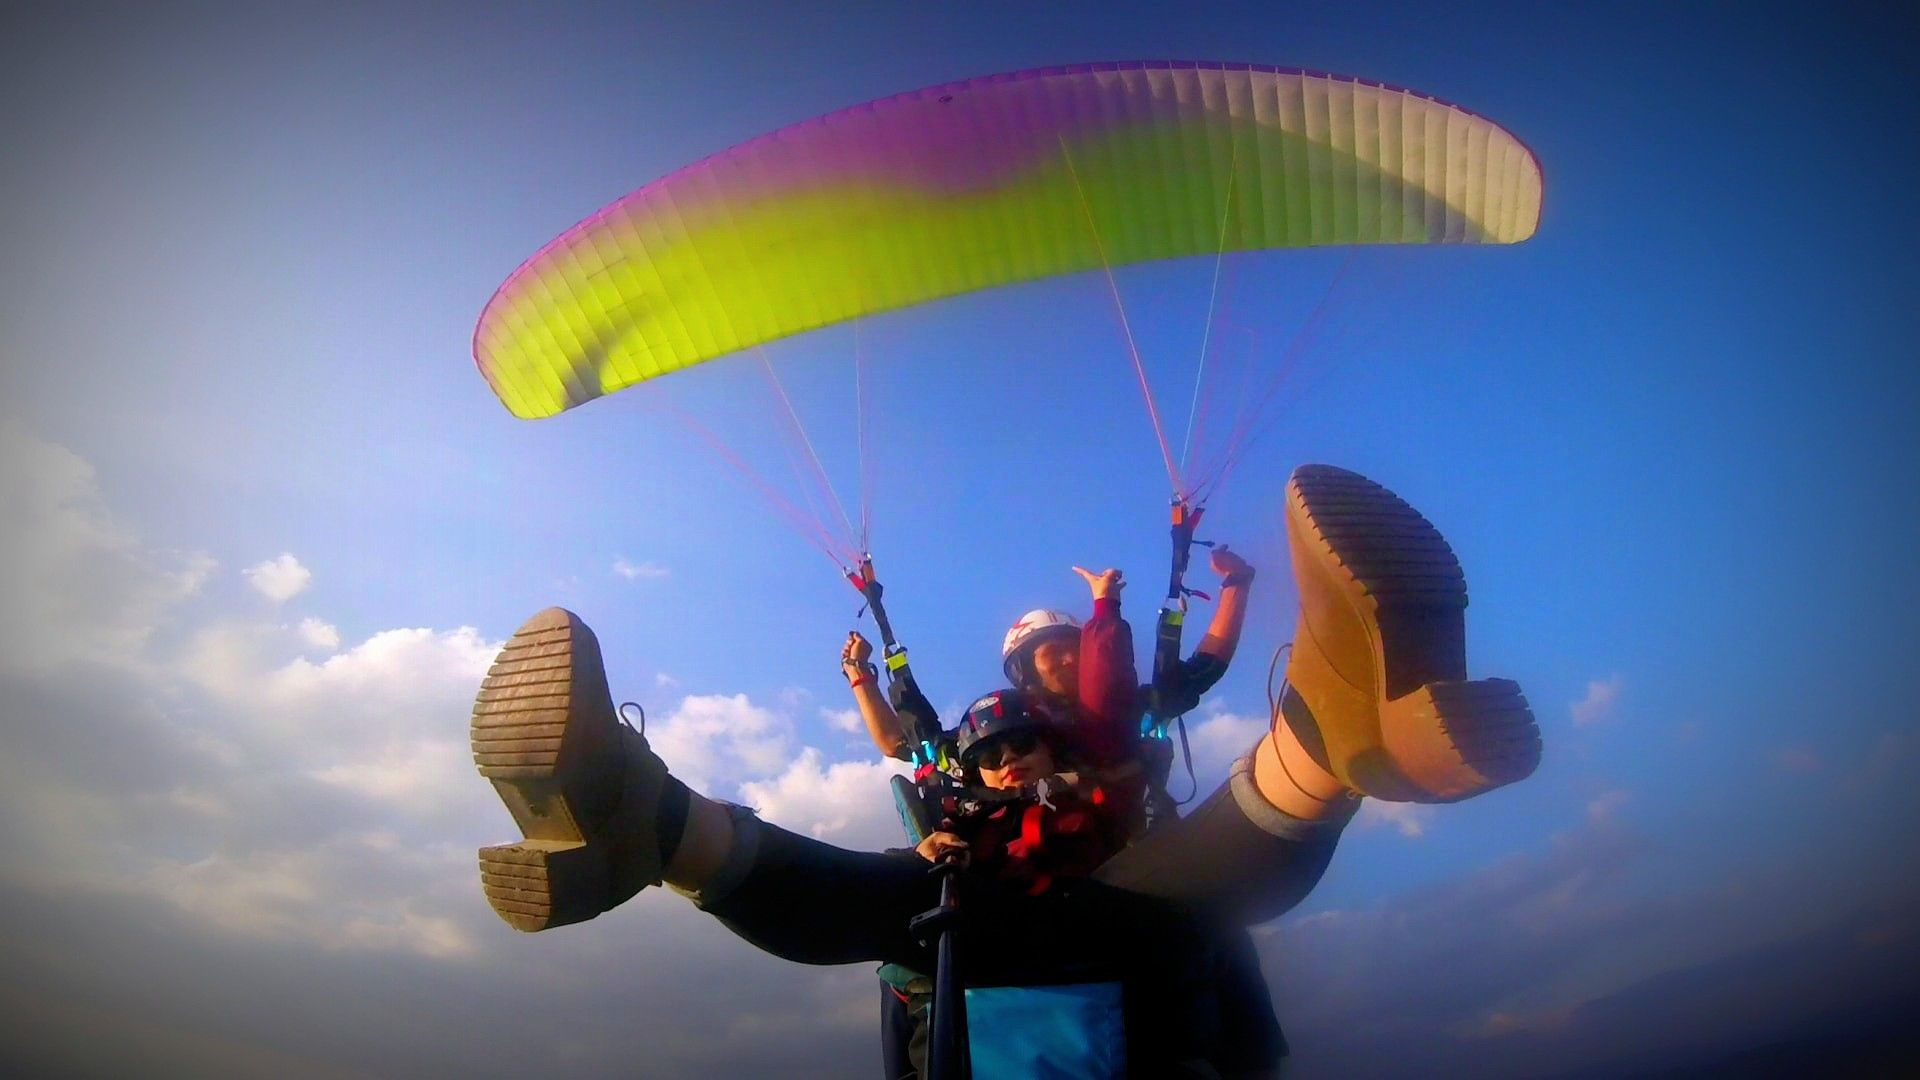 MY FIRST PARAGLIDING EXPERIENCE: KATHMANDU PARAGLIDING